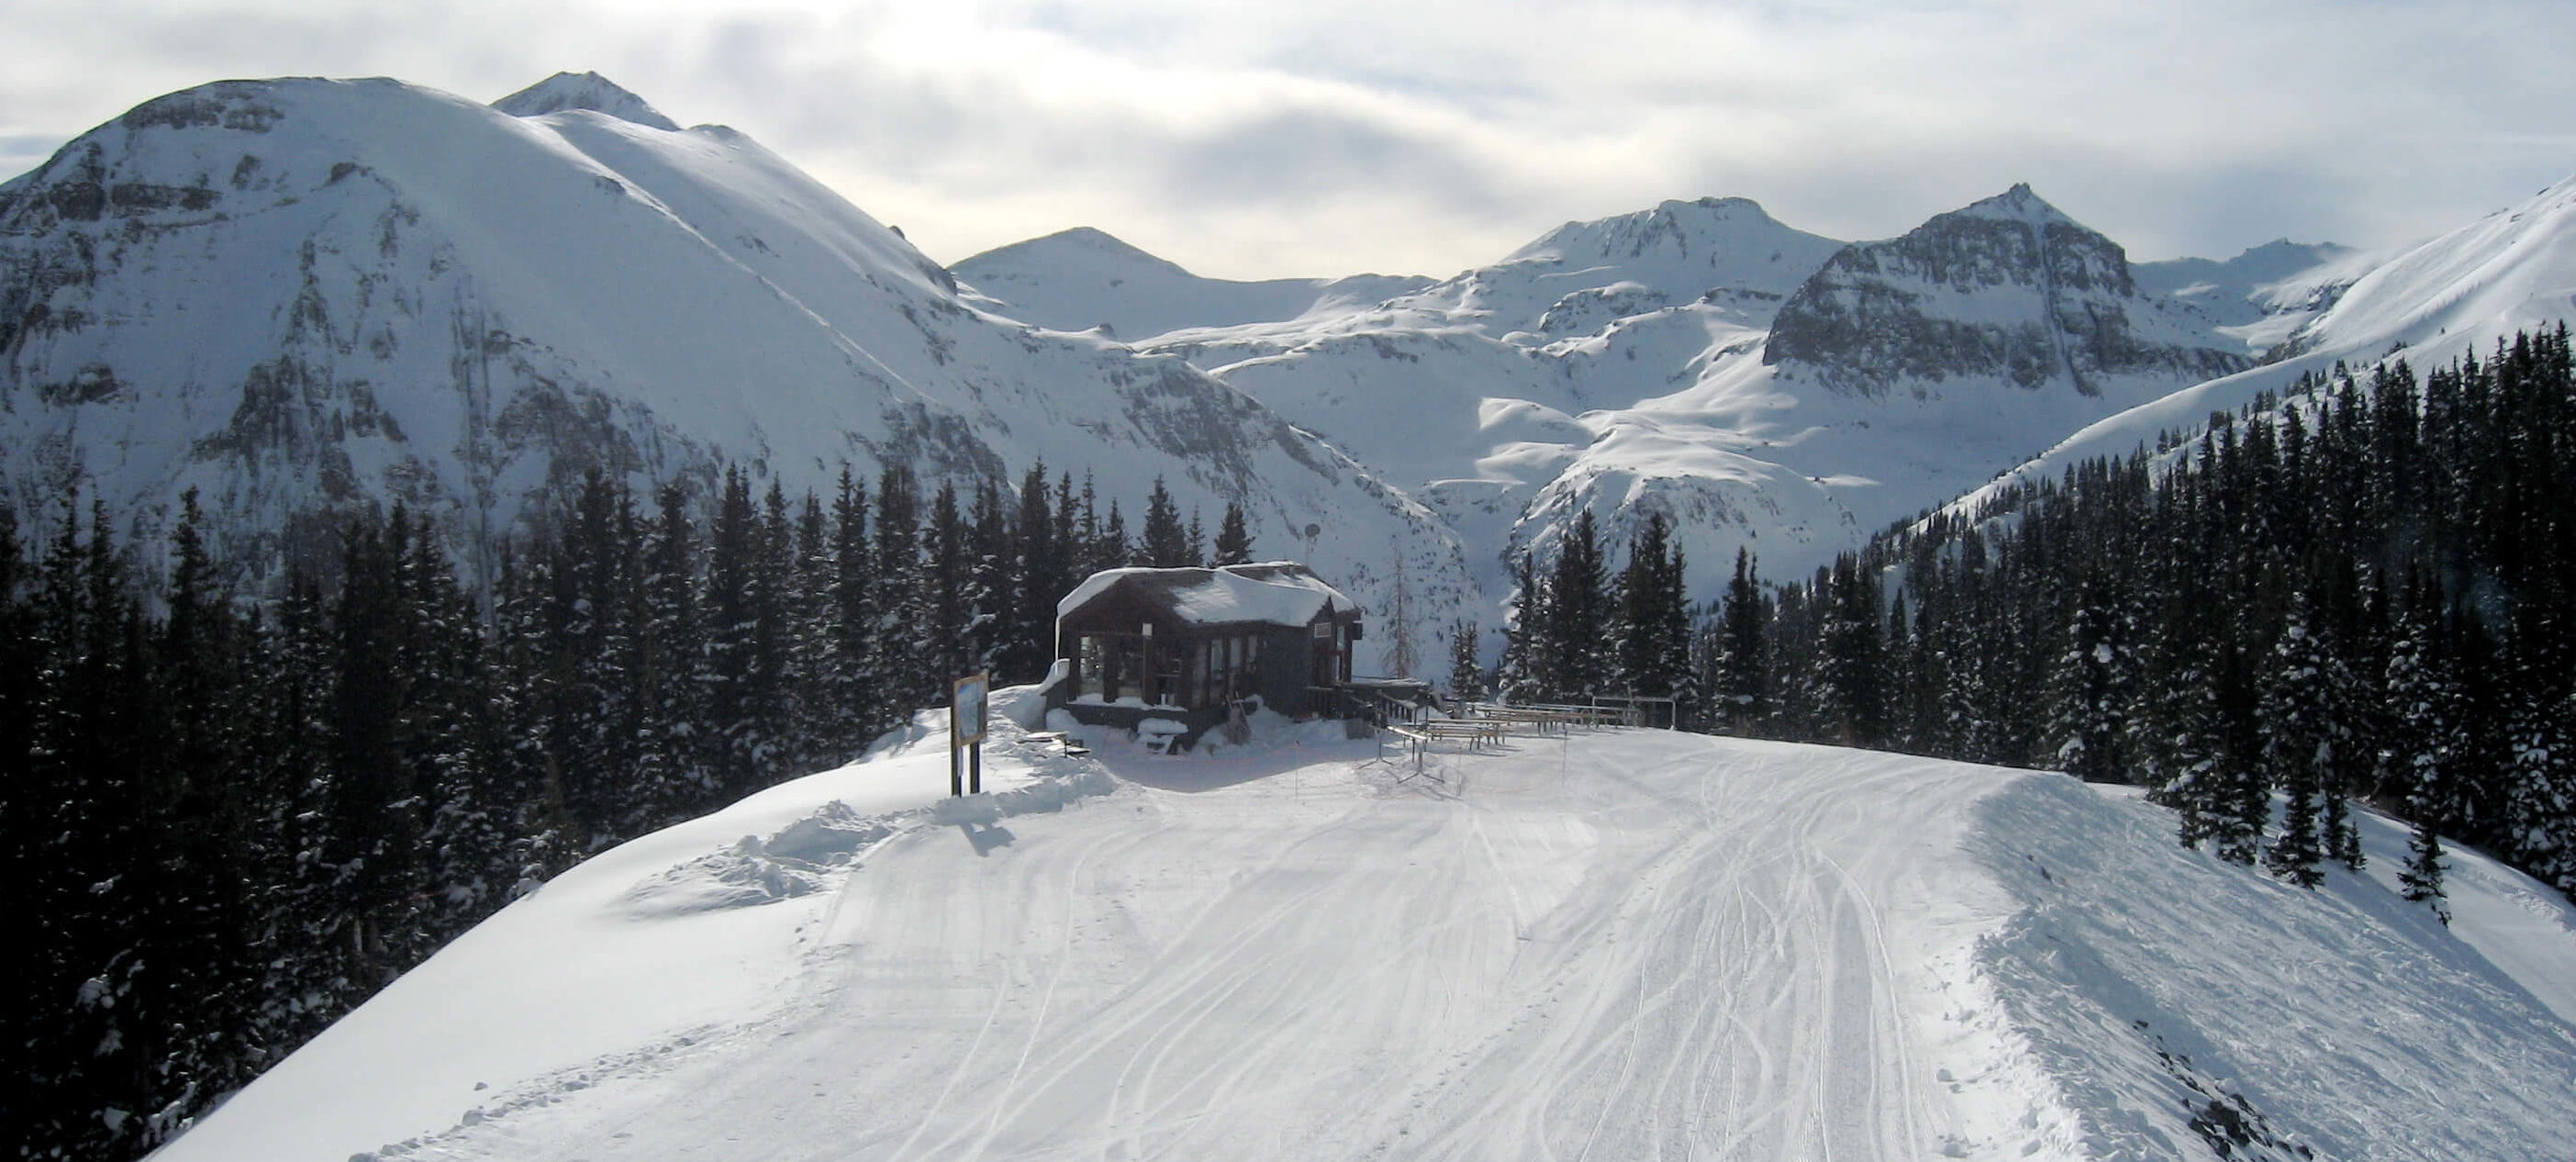 telluride colorado 2 day itinerary of top things to do bindu trips telluride colorado 2 day itinerary of